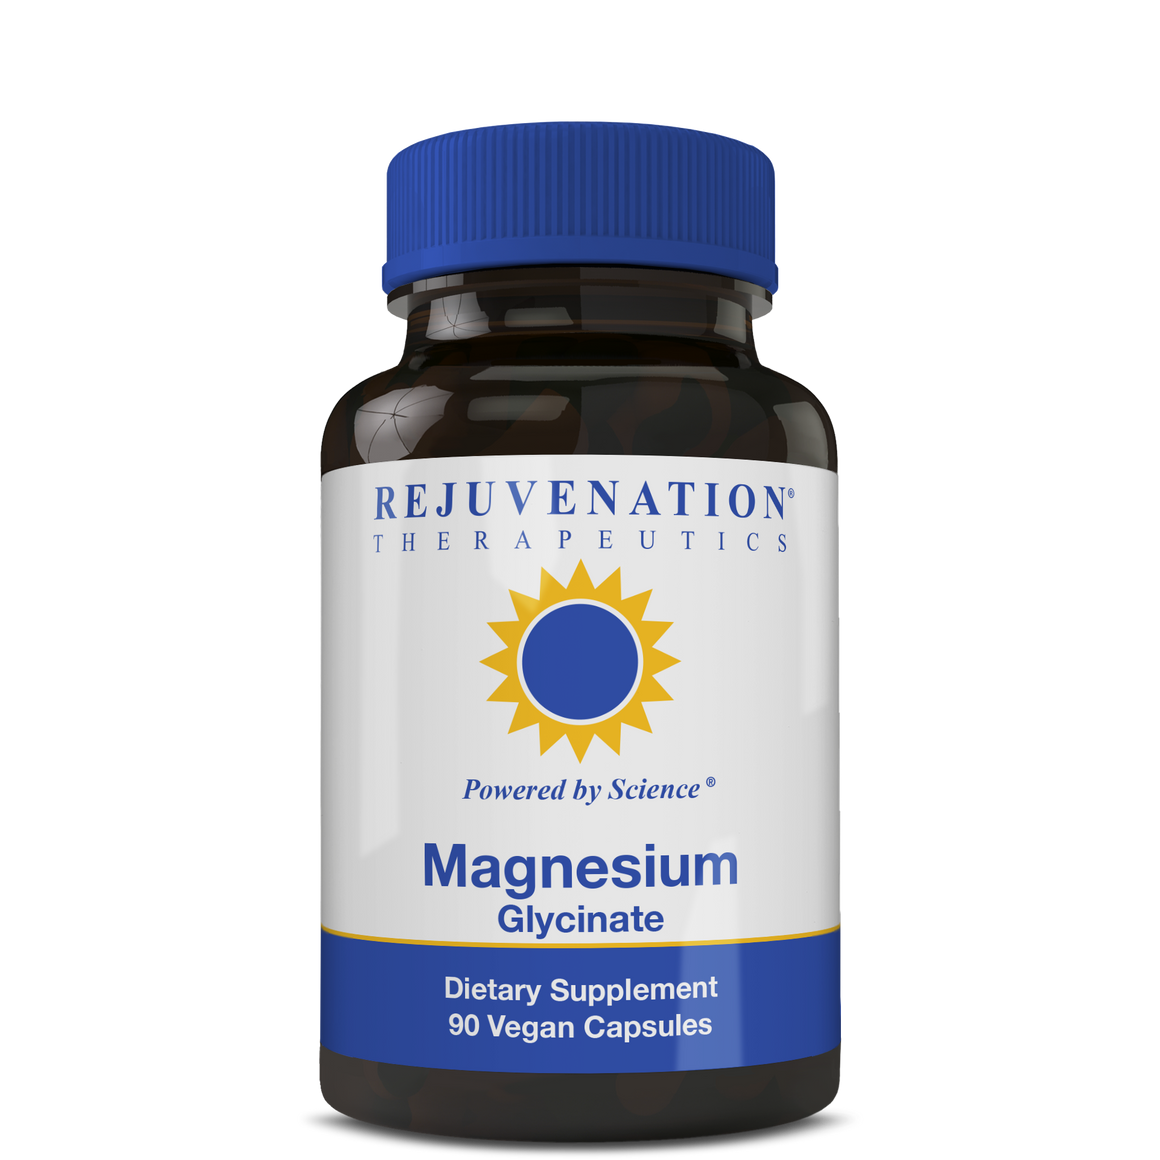 Magnesium Glycinate (300 mg, 90 Vegan Capsules) - Cardiovascular & Whole-Body Health Support, Non-GMO, Gluten-Free